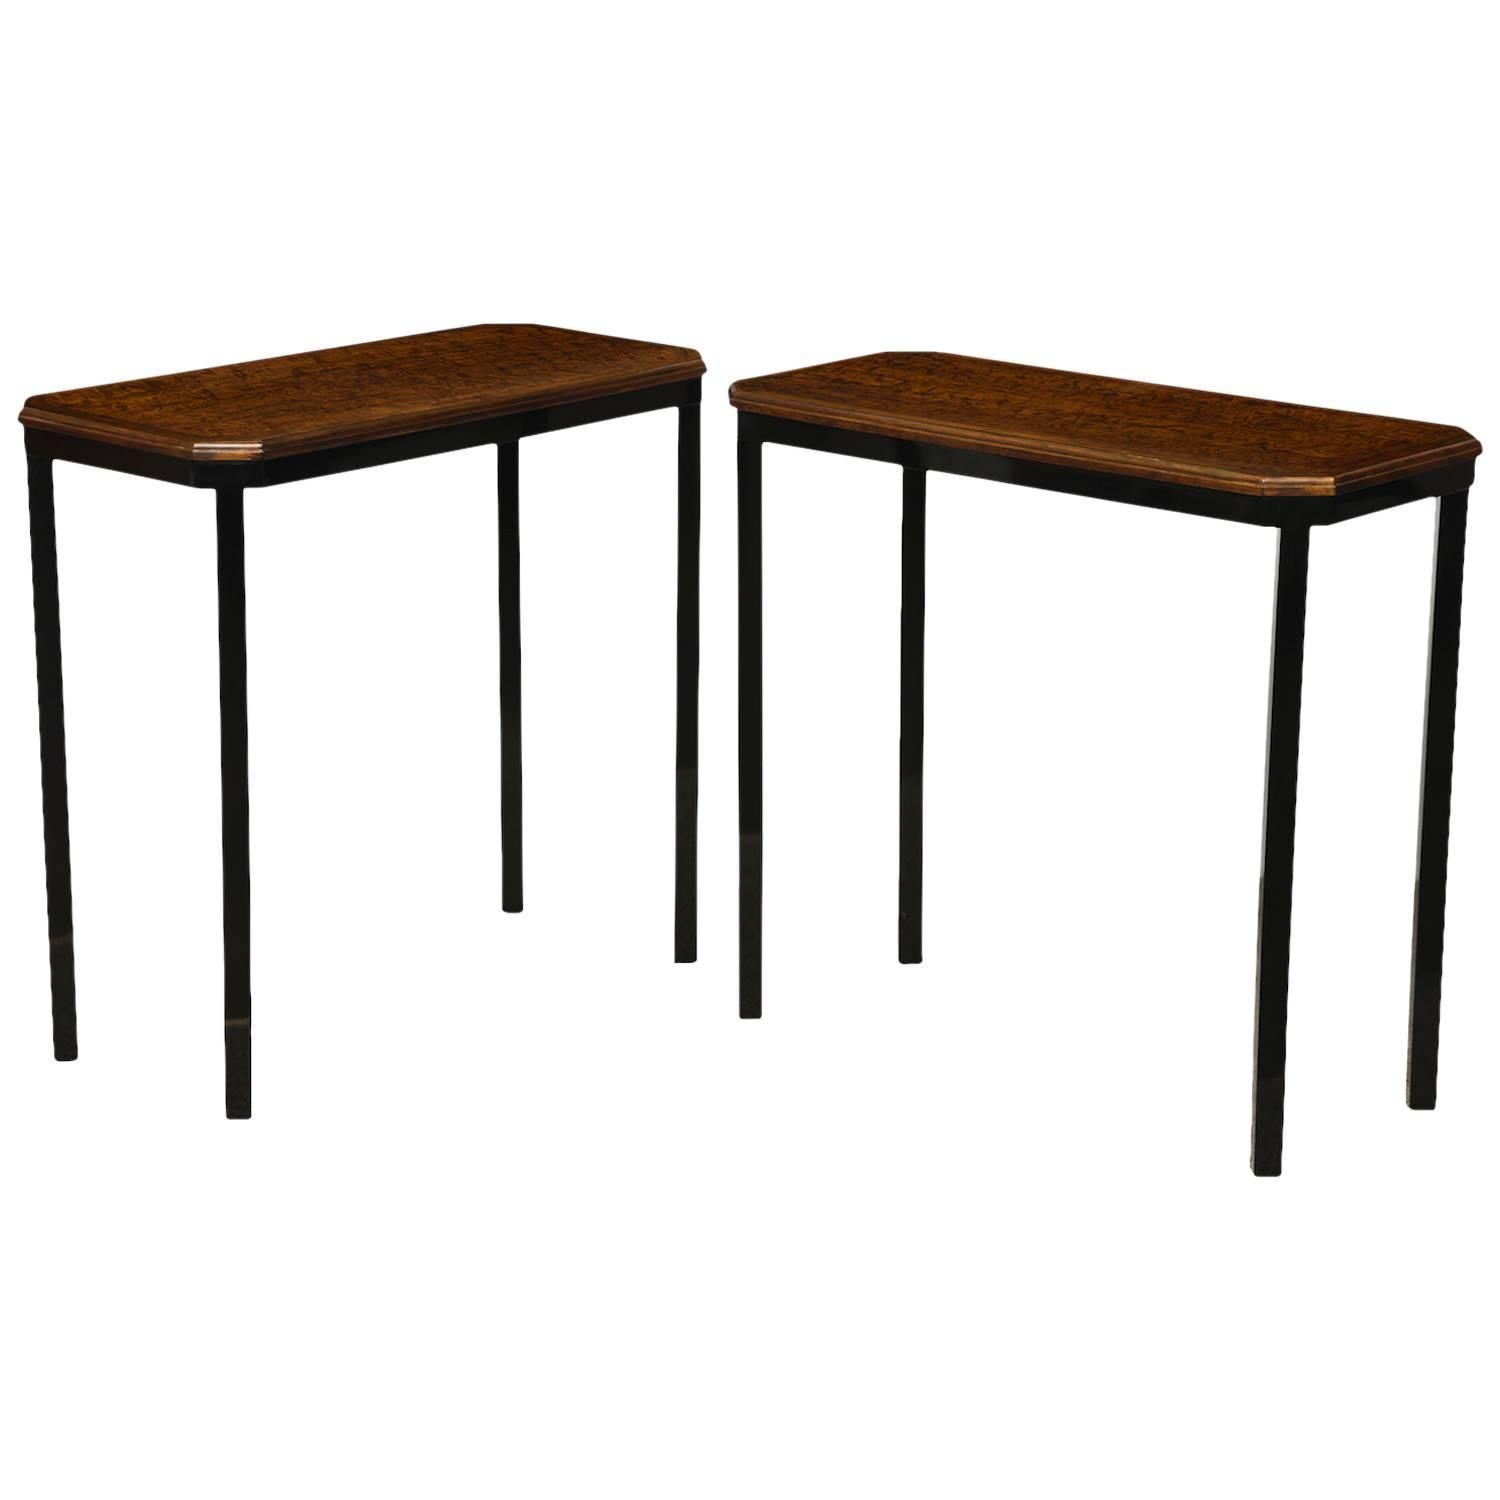 pair of petite console tables by paul laszlo at 1stdibs. Black Bedroom Furniture Sets. Home Design Ideas